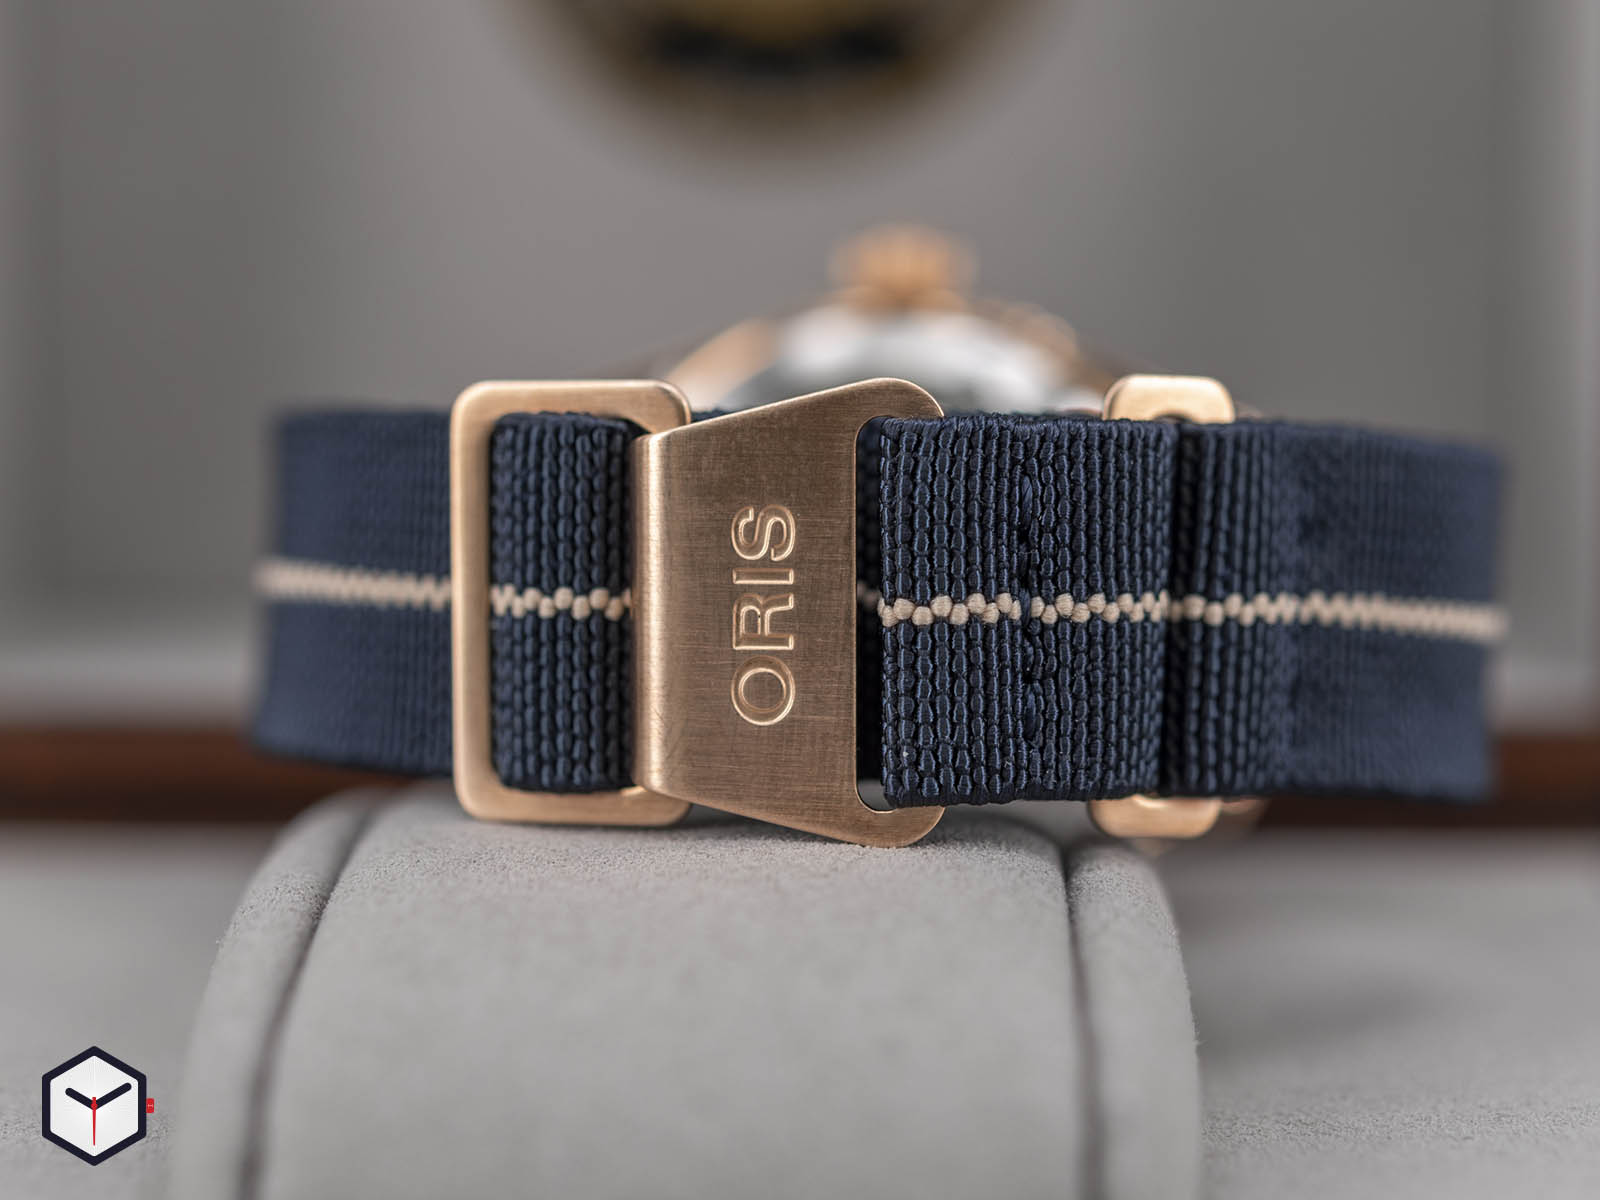 01-401-7764-3185-oris-carl-brashear-calibre-401-limited-edition-7.jpg